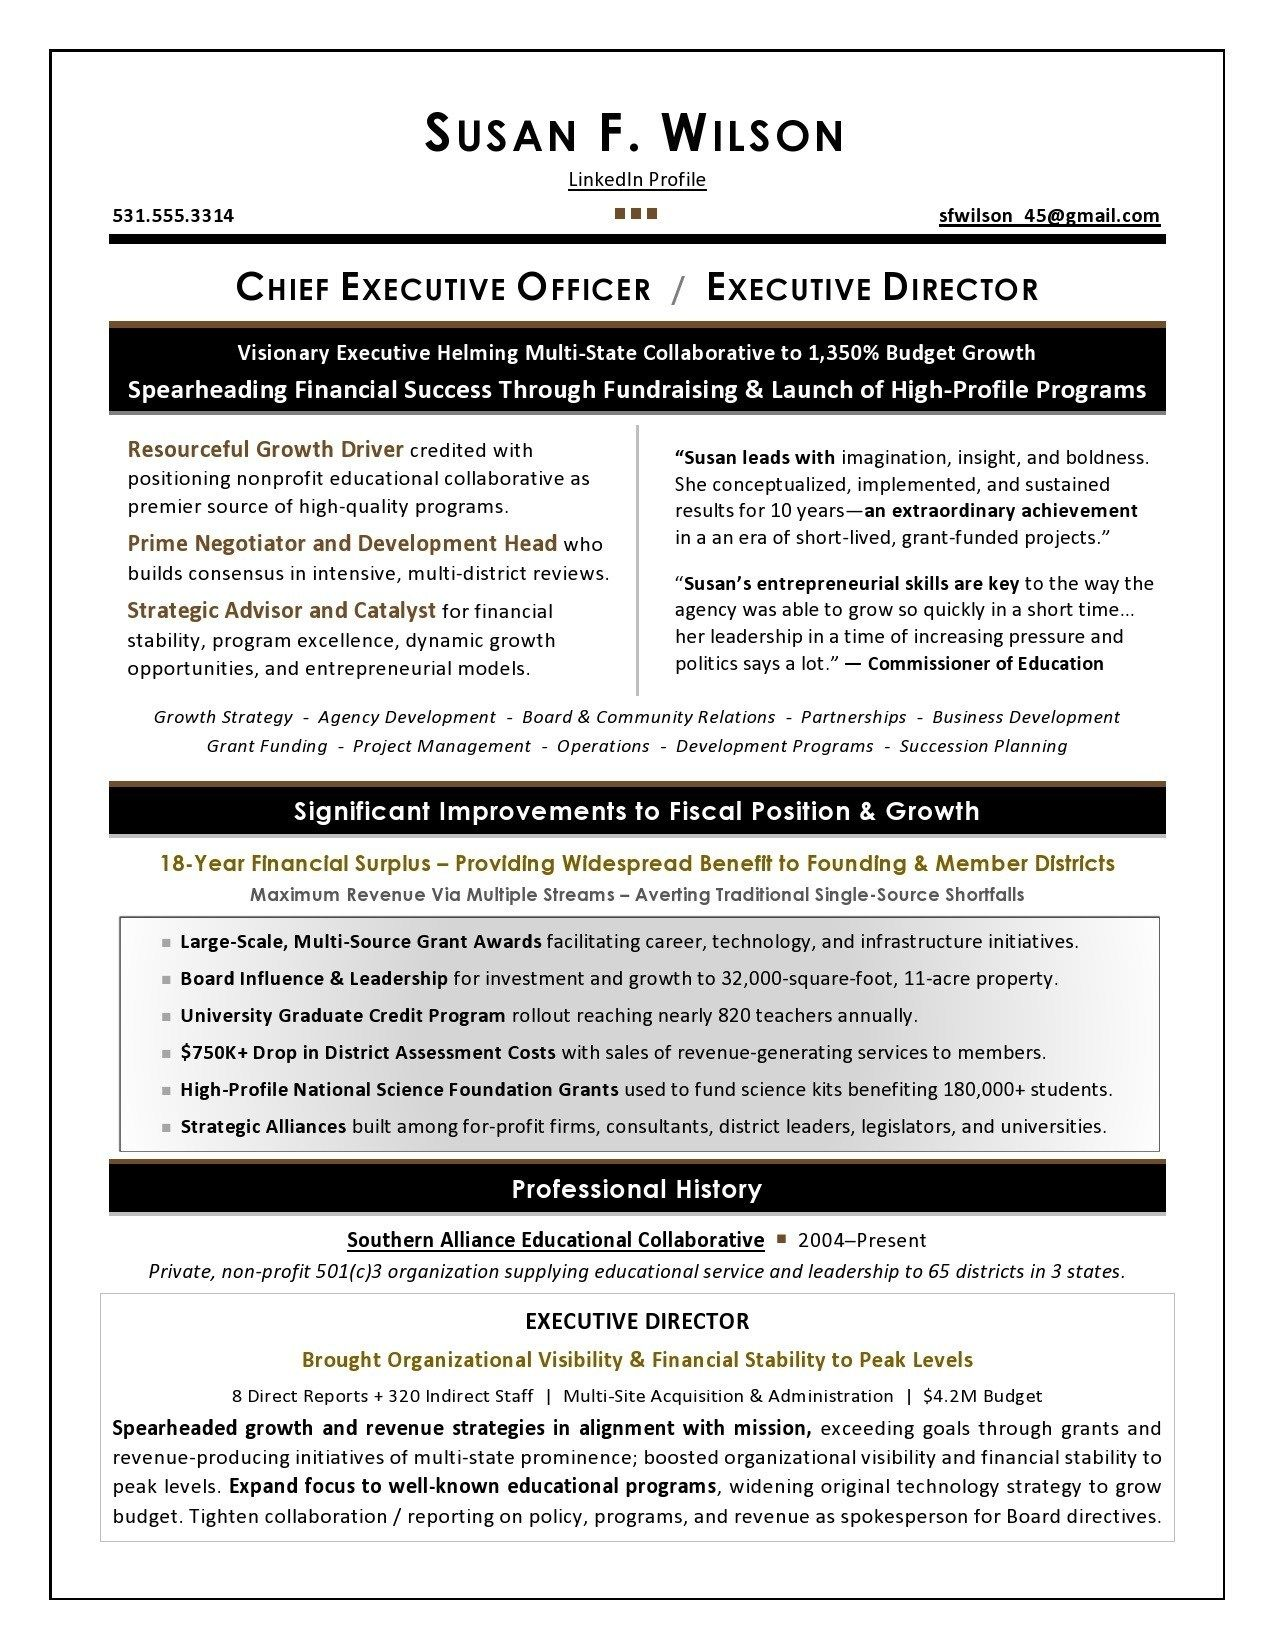 Resume Examples Nonprofit Resume Templates Resume Examples Executive Resume Template Resume Template Examples